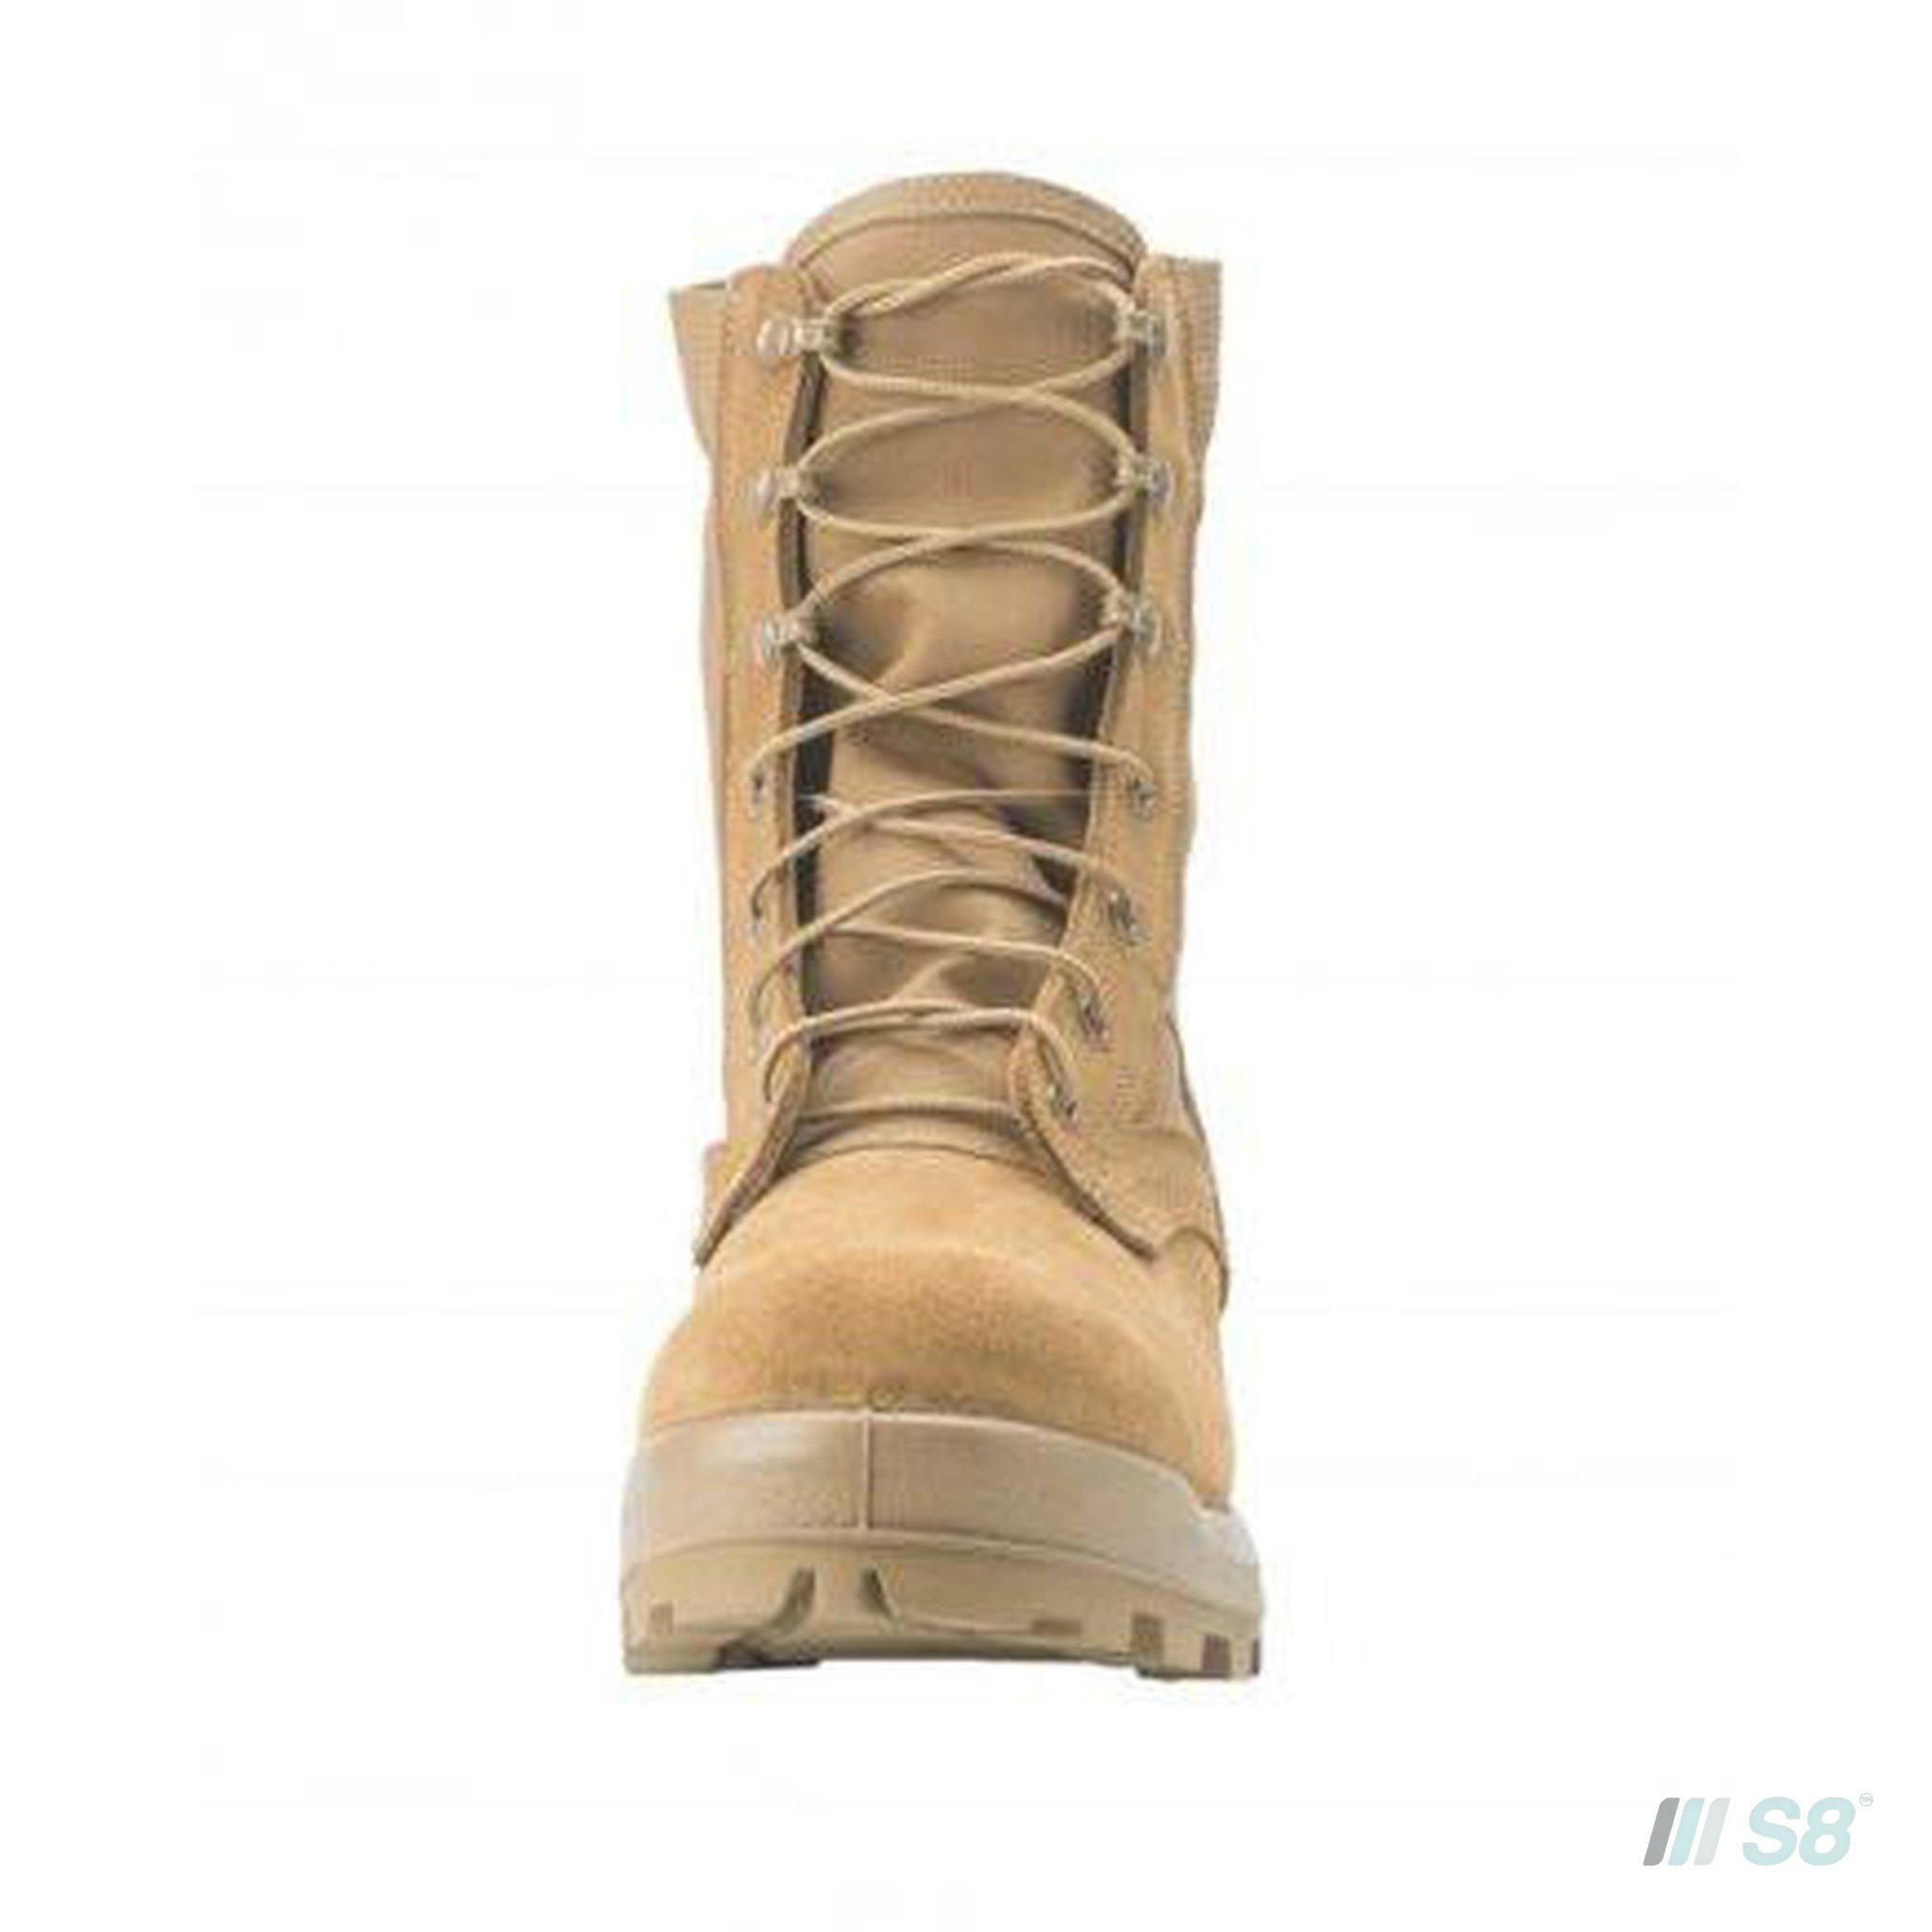 BELLEVILLE Burma 902 - Tropical/Jungle Boot-Belleville-S8 Products Group